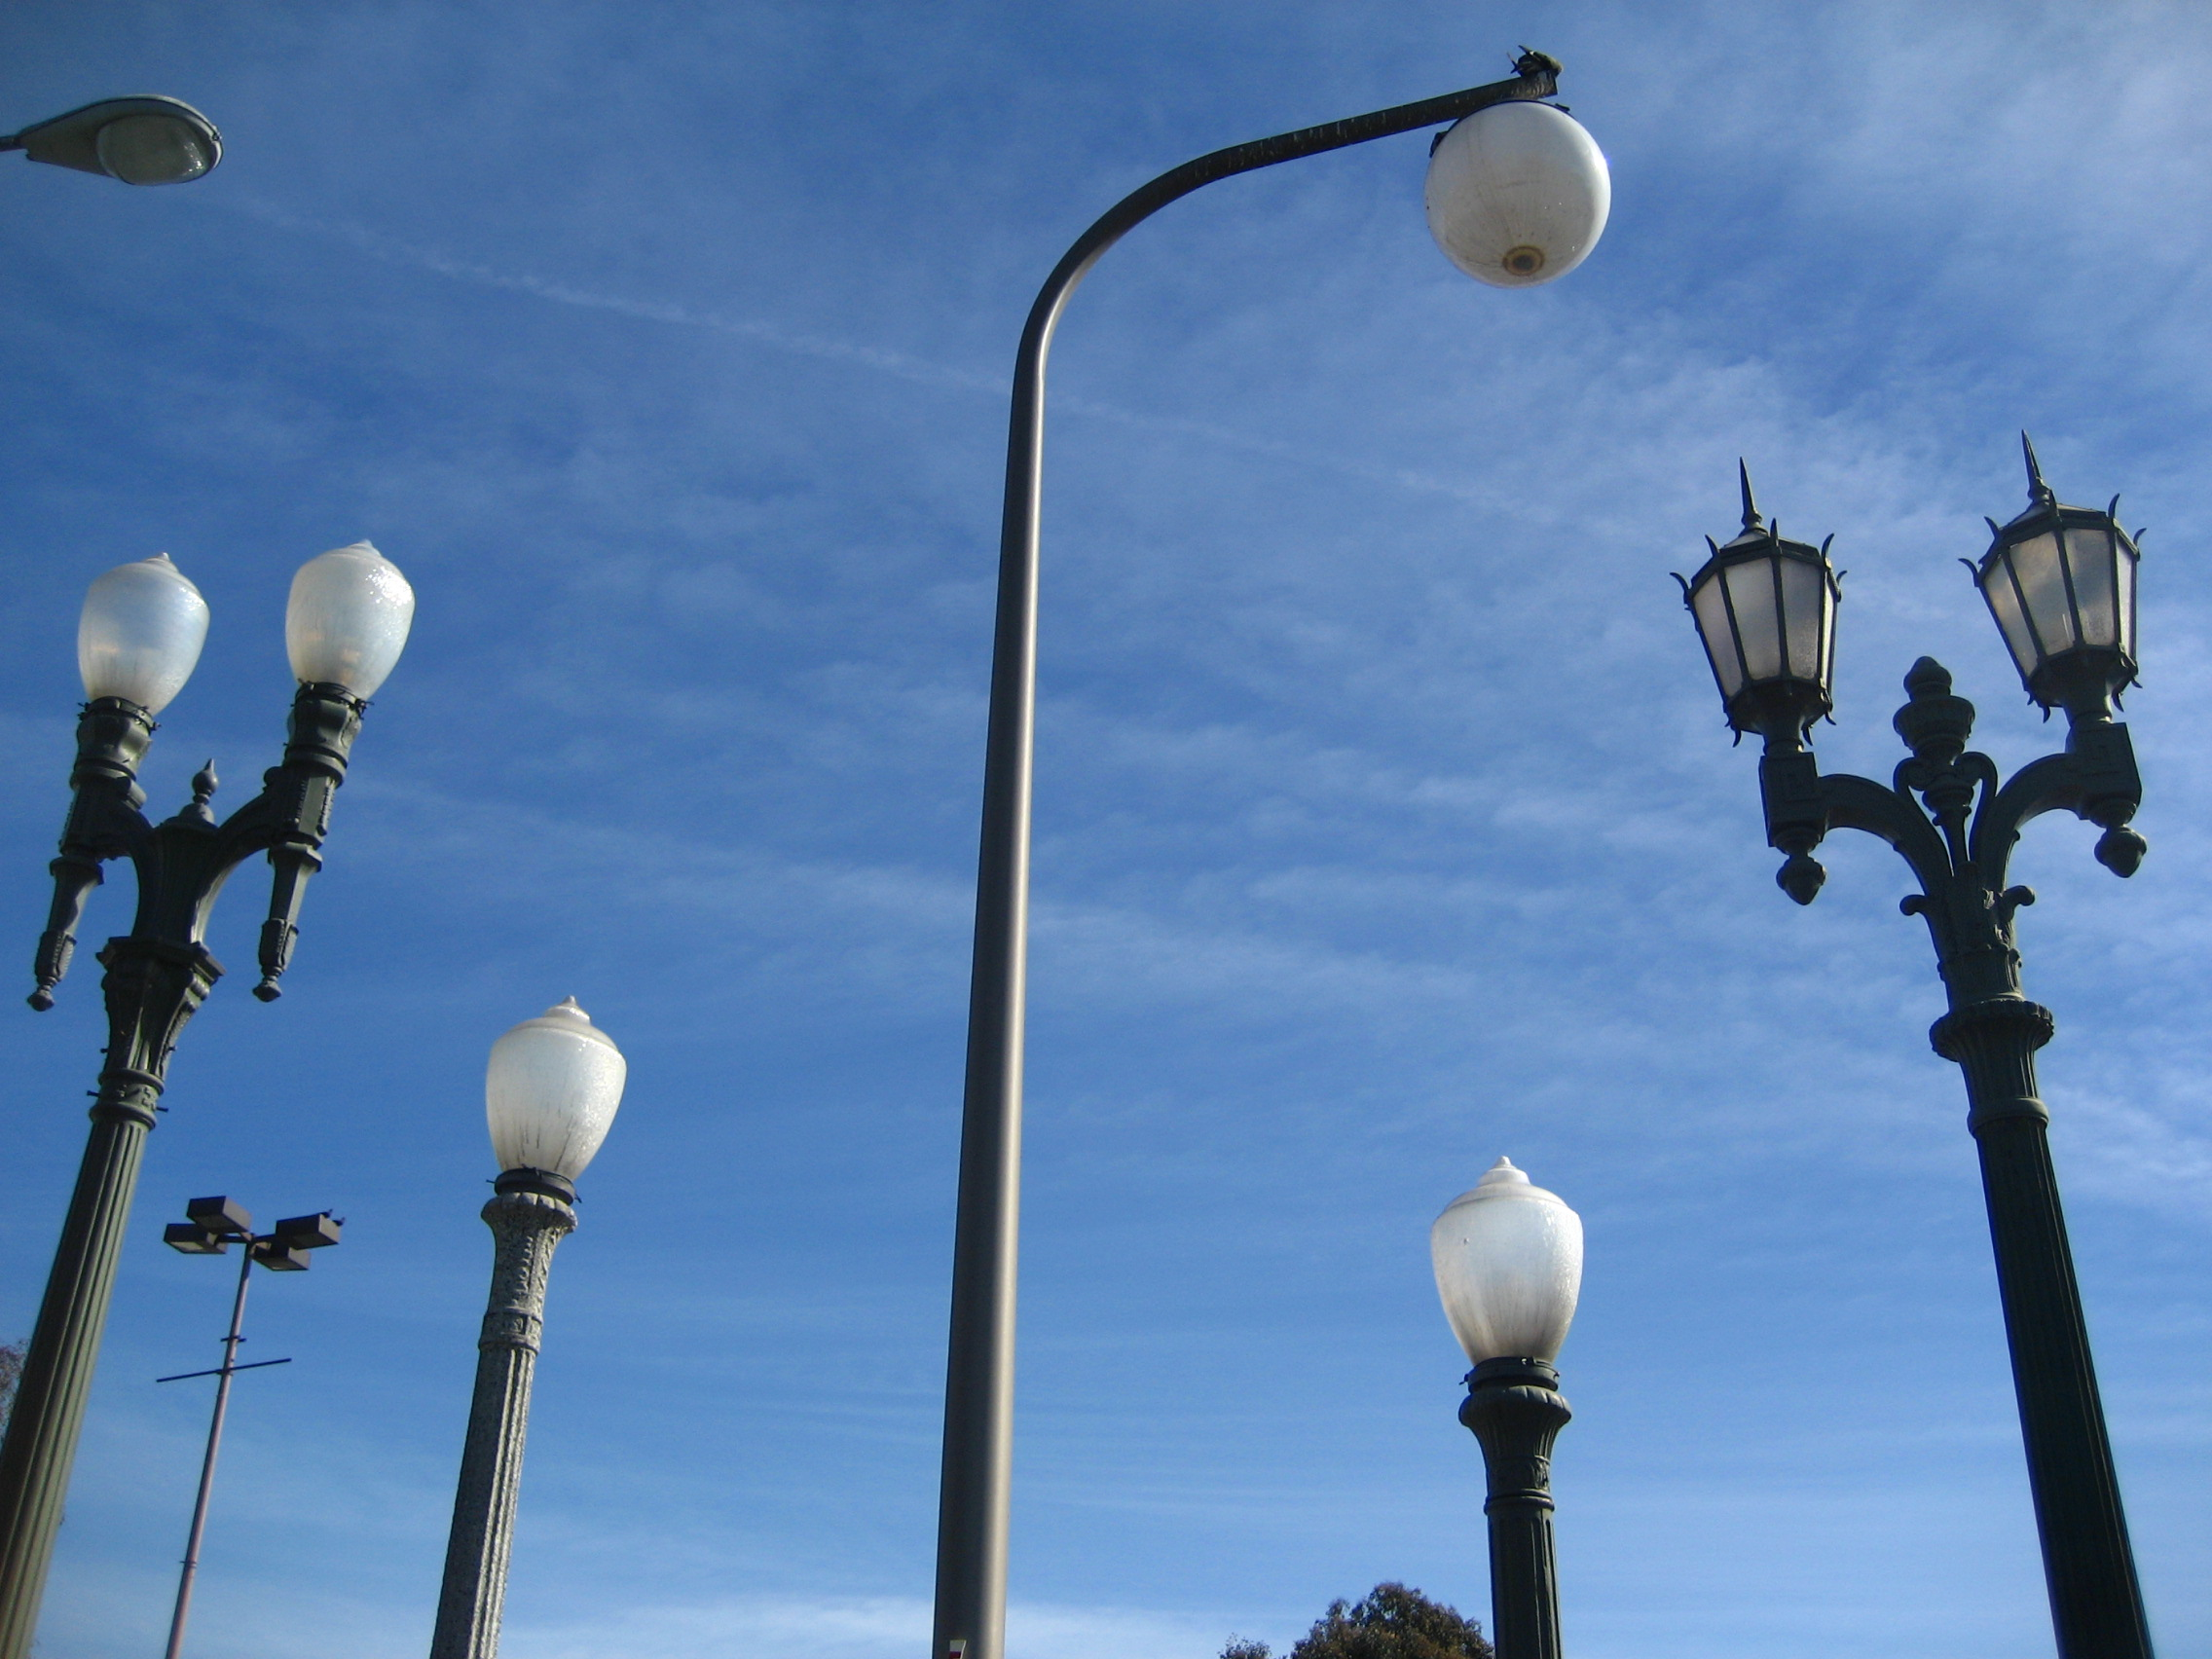 A photo of the tops of streetlights against a background of blue sky.